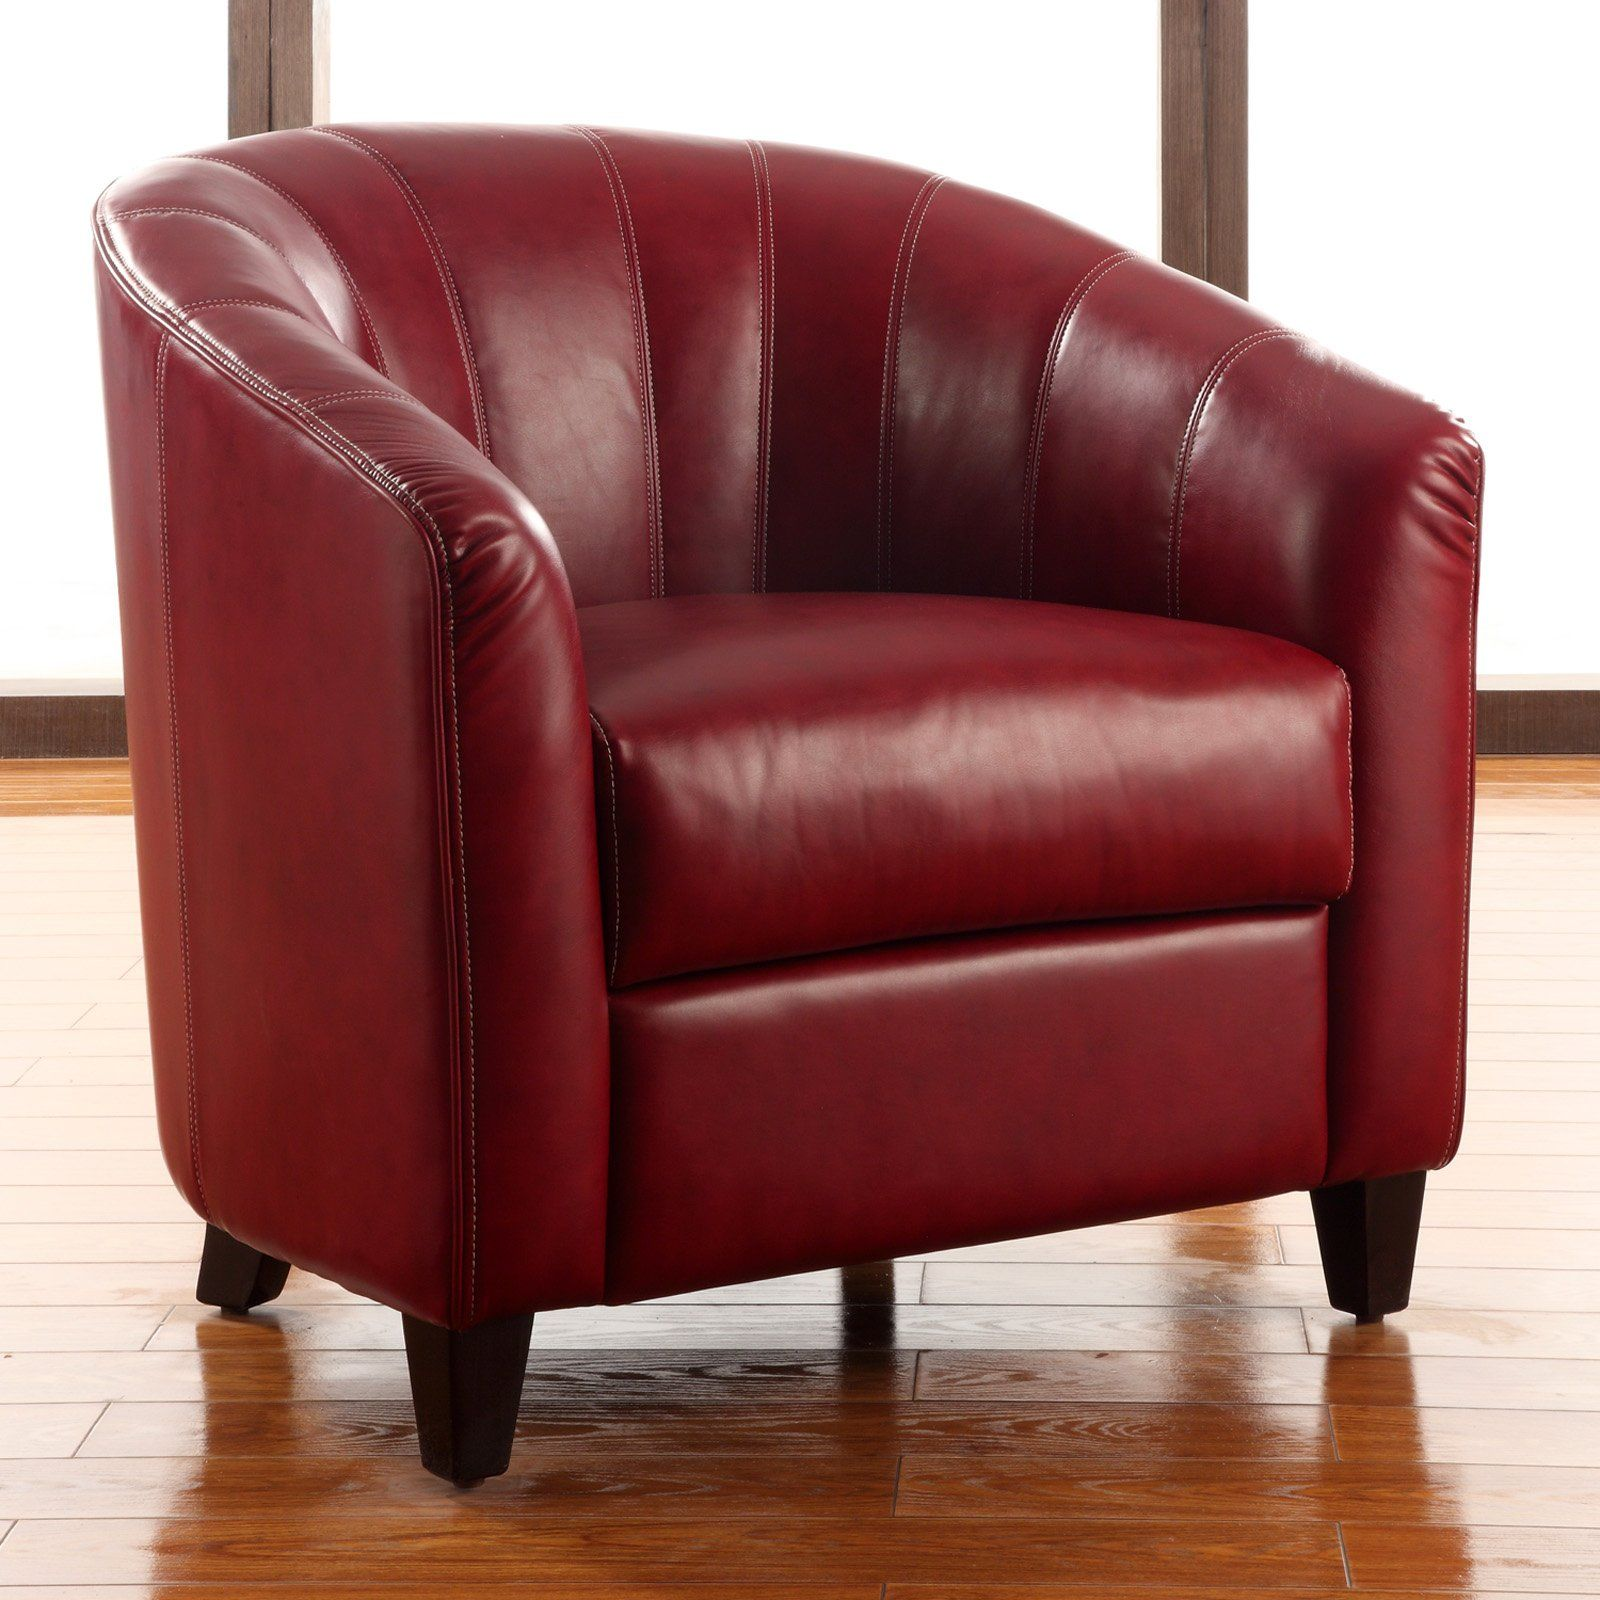 Hayneedle Hadley Faux Leather Accent Chair Burnt Red $499 99